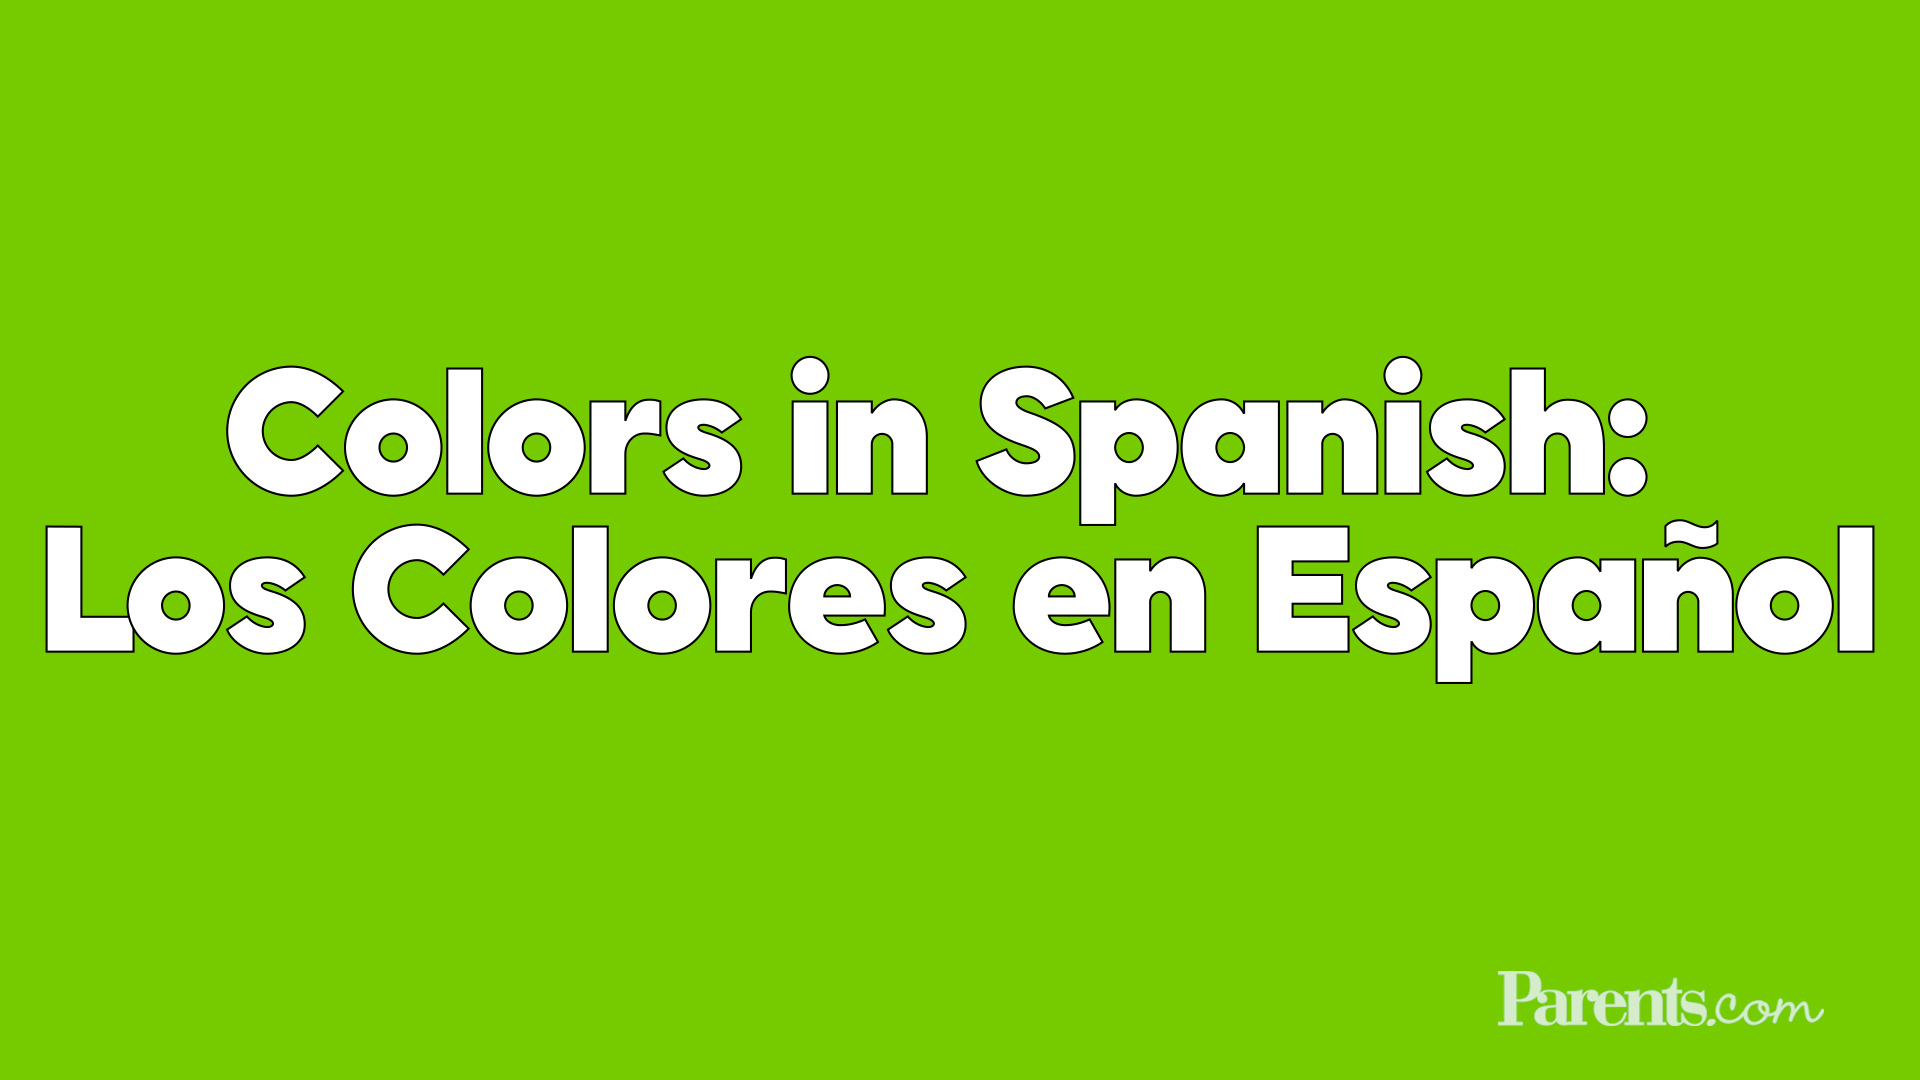 Colors: Los Colores | Parents